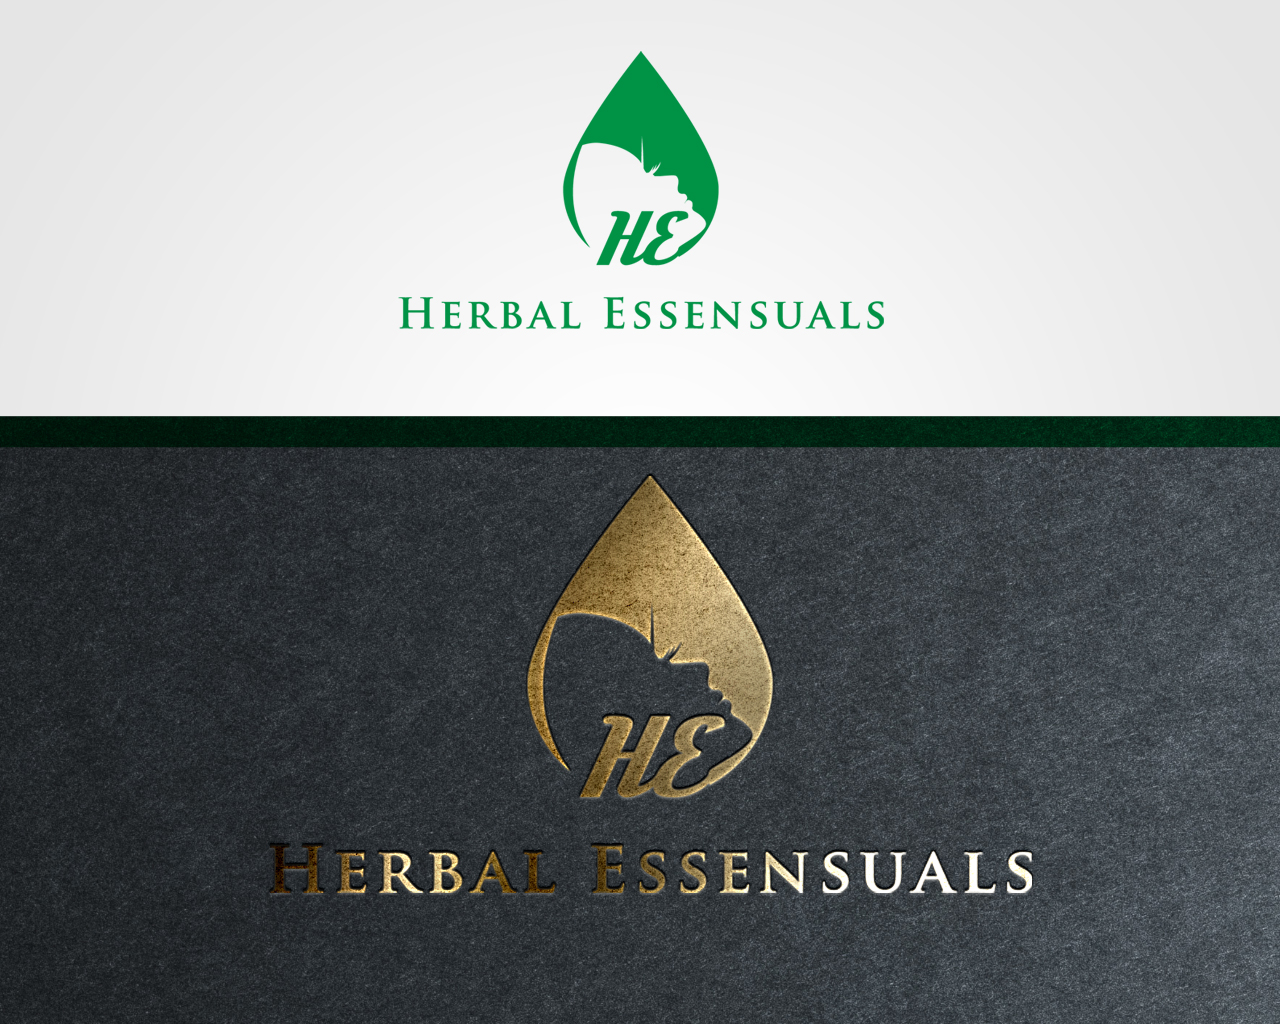 Logo Design by Mehedi Hasan - Entry No. 108 in the Logo Design Contest Captivating Logo Design for Herbal Essensuals.